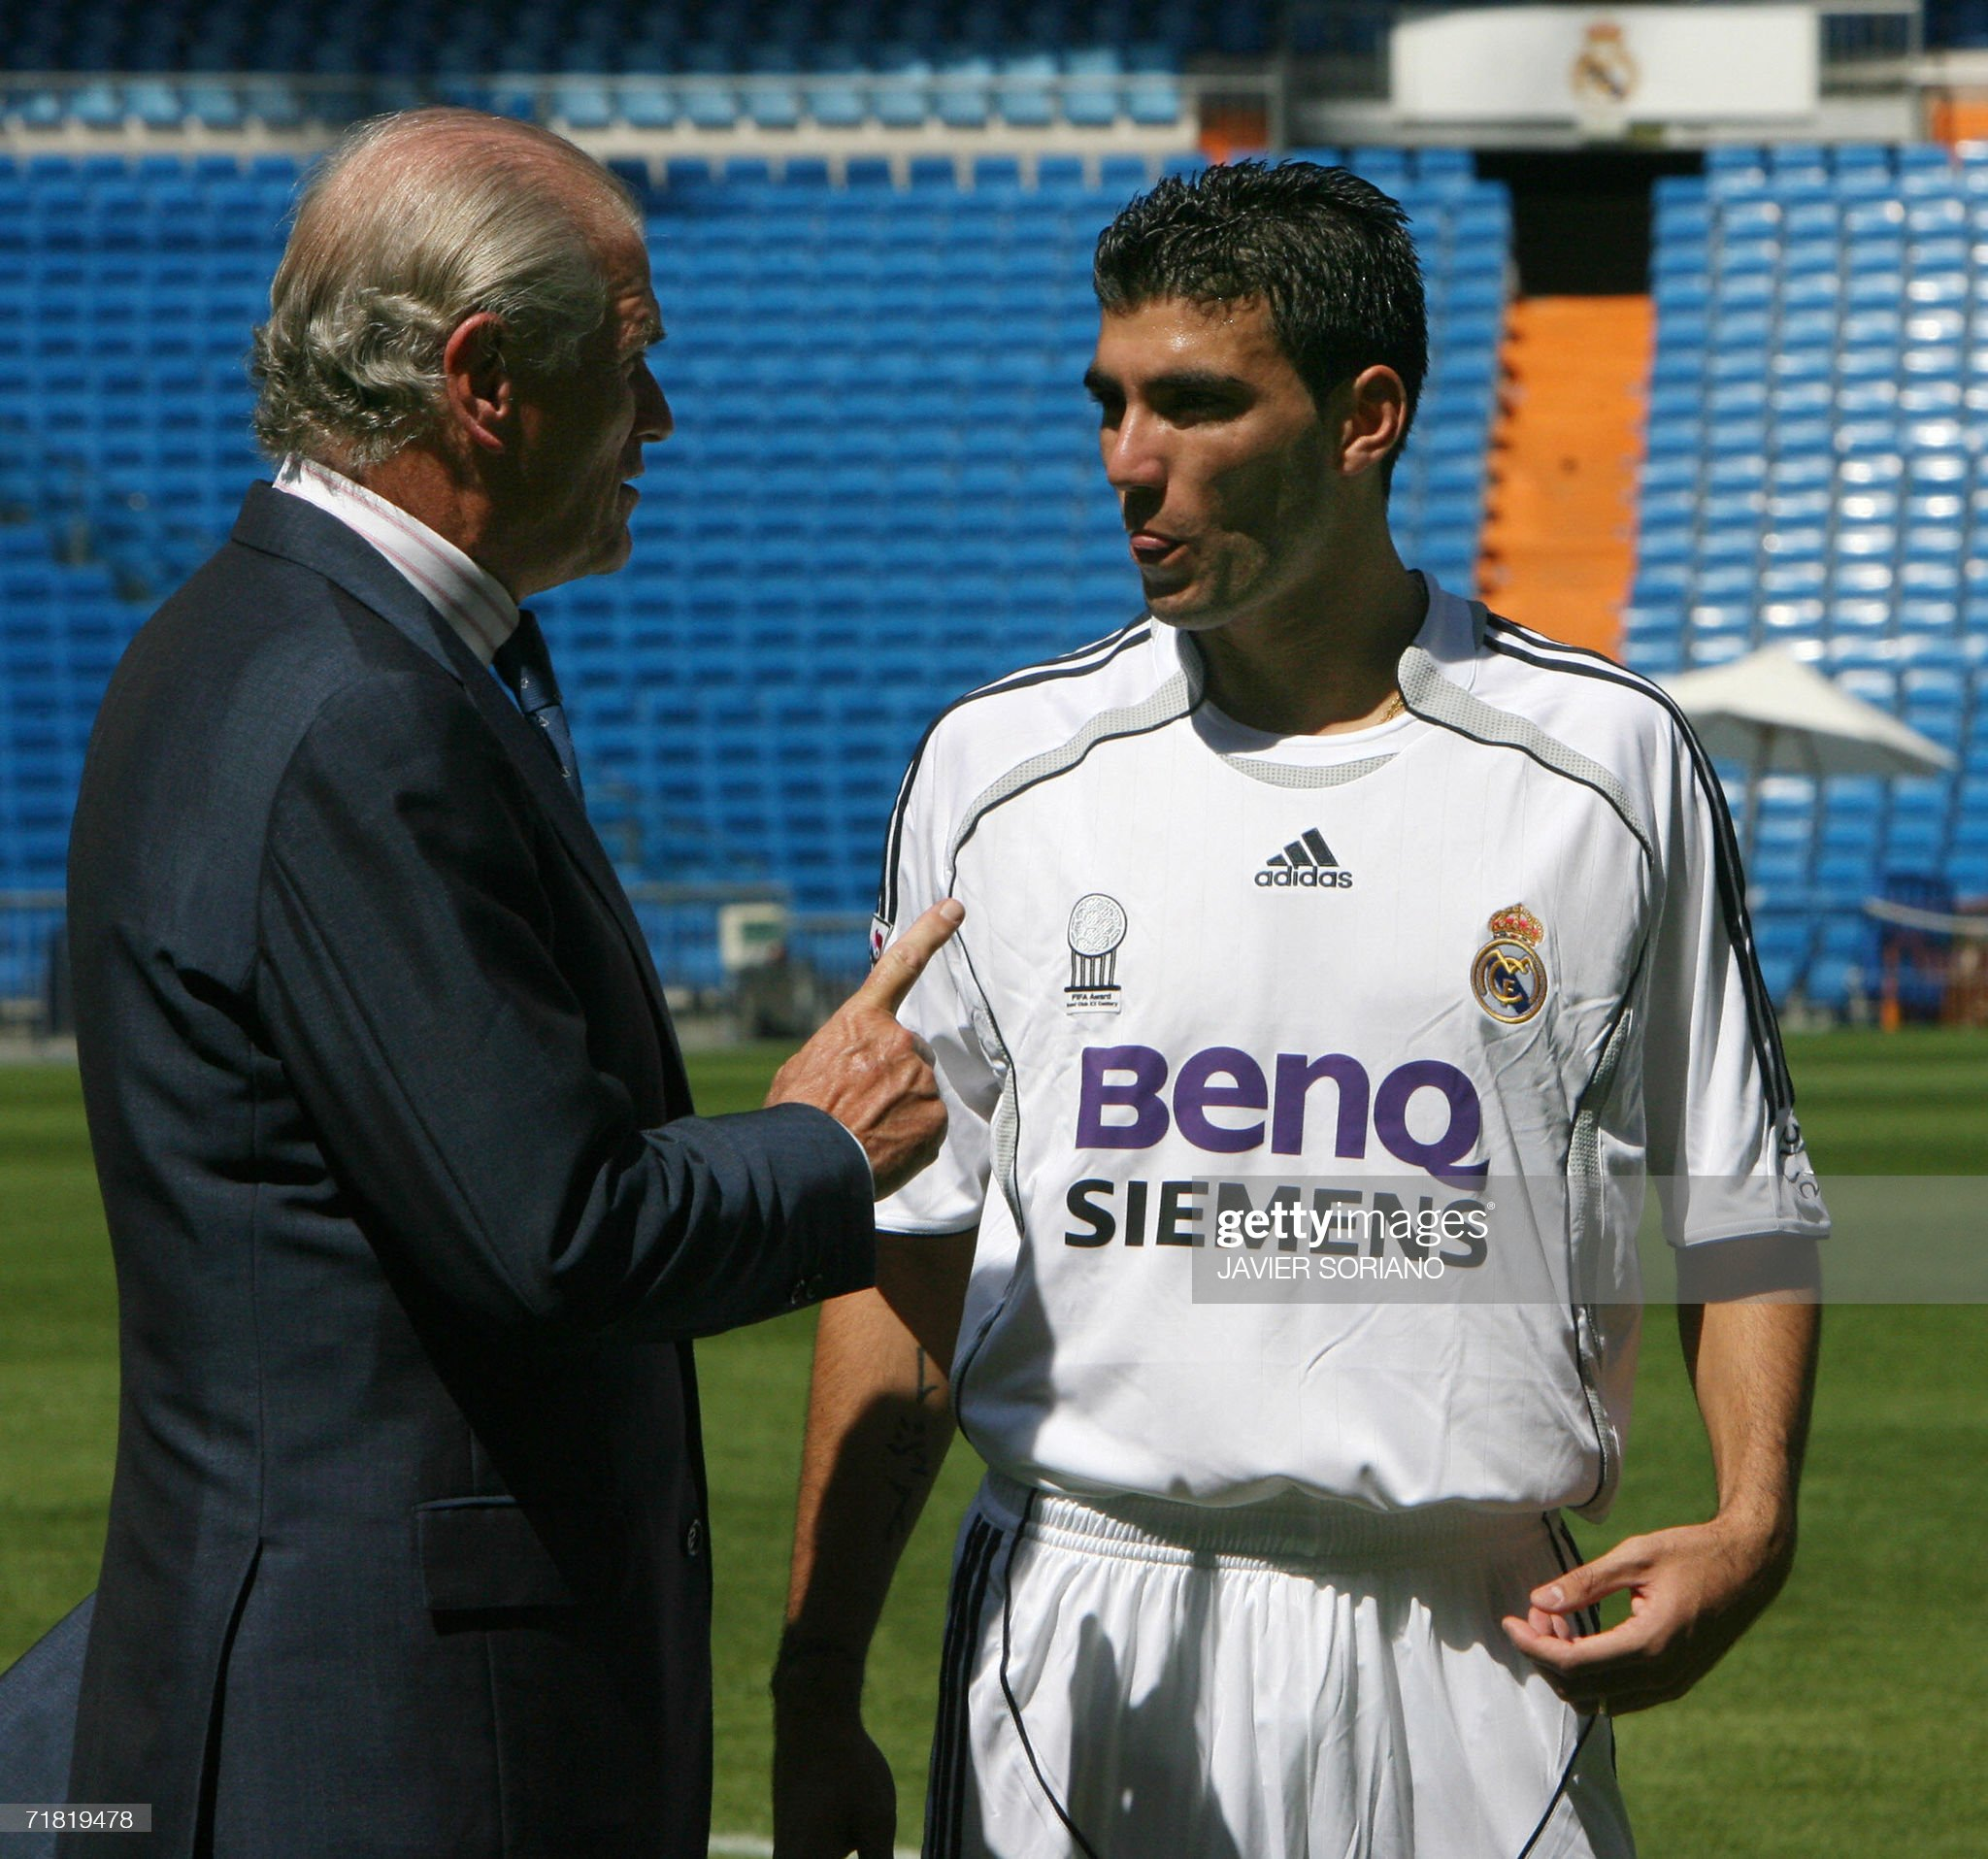 ¿Cuánto mide Ramón Calderón? Madrid-spain-real-madrids-new-signing-jose-antonio-reyes-talks-to-picture-id71819478?s=2048x2048